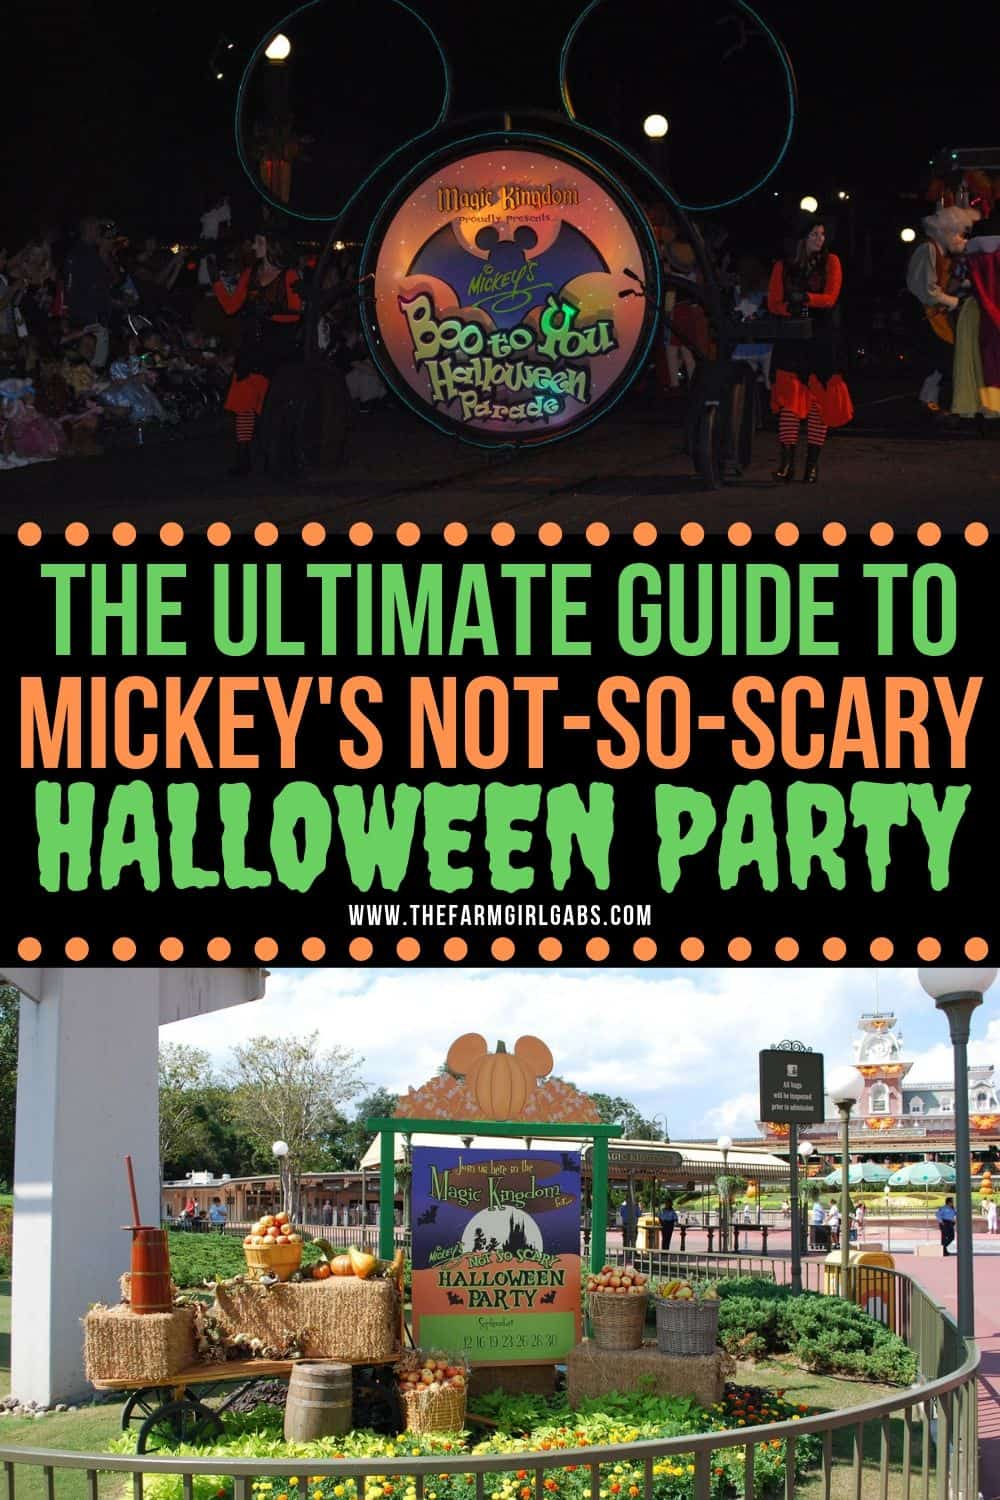 Halloween Disney 2019 Date.Spooktacular Tips For Mickey S Not So Scary Halloween Party